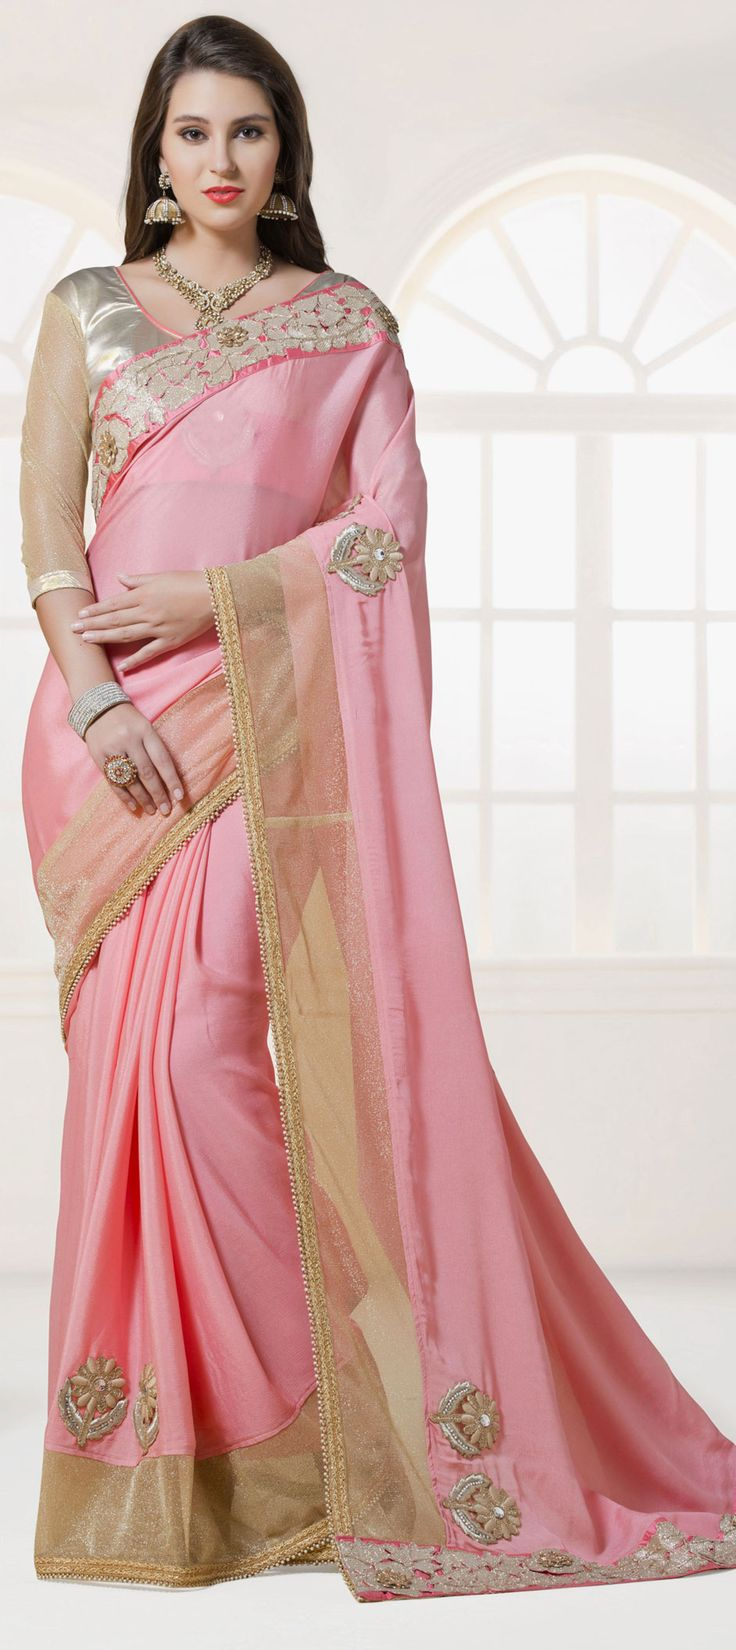 Pink and Majenta color family Embroidered Sarees, Party Wear Sarees with matching unstitched blouse.